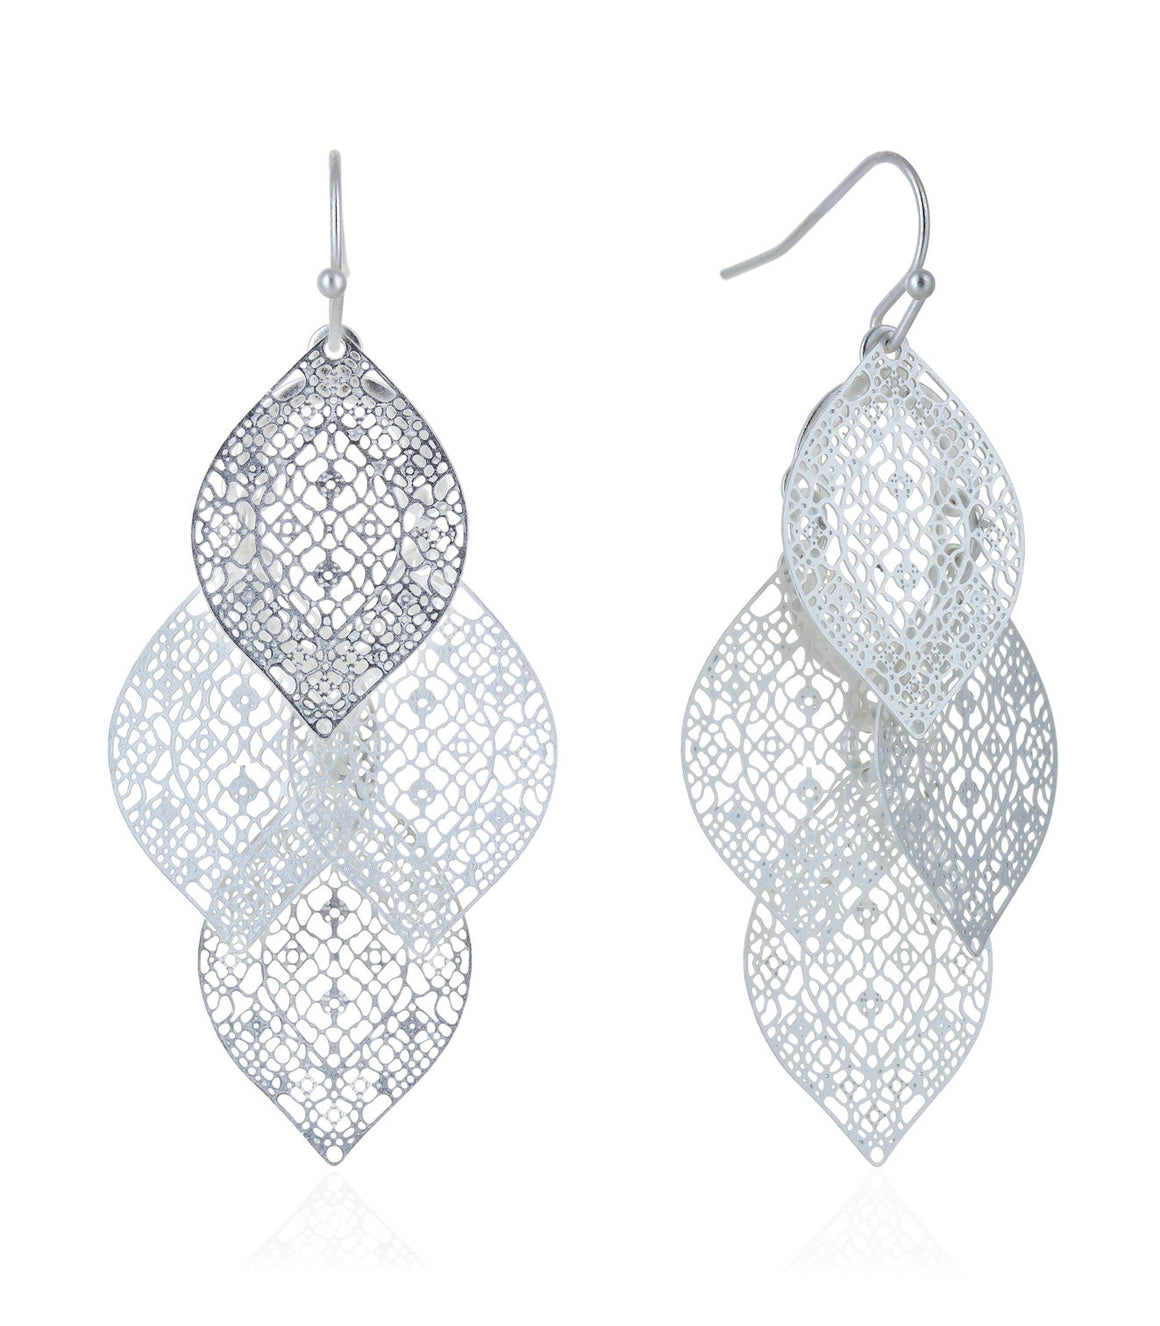 Filigree cut chandelier leaf earrings